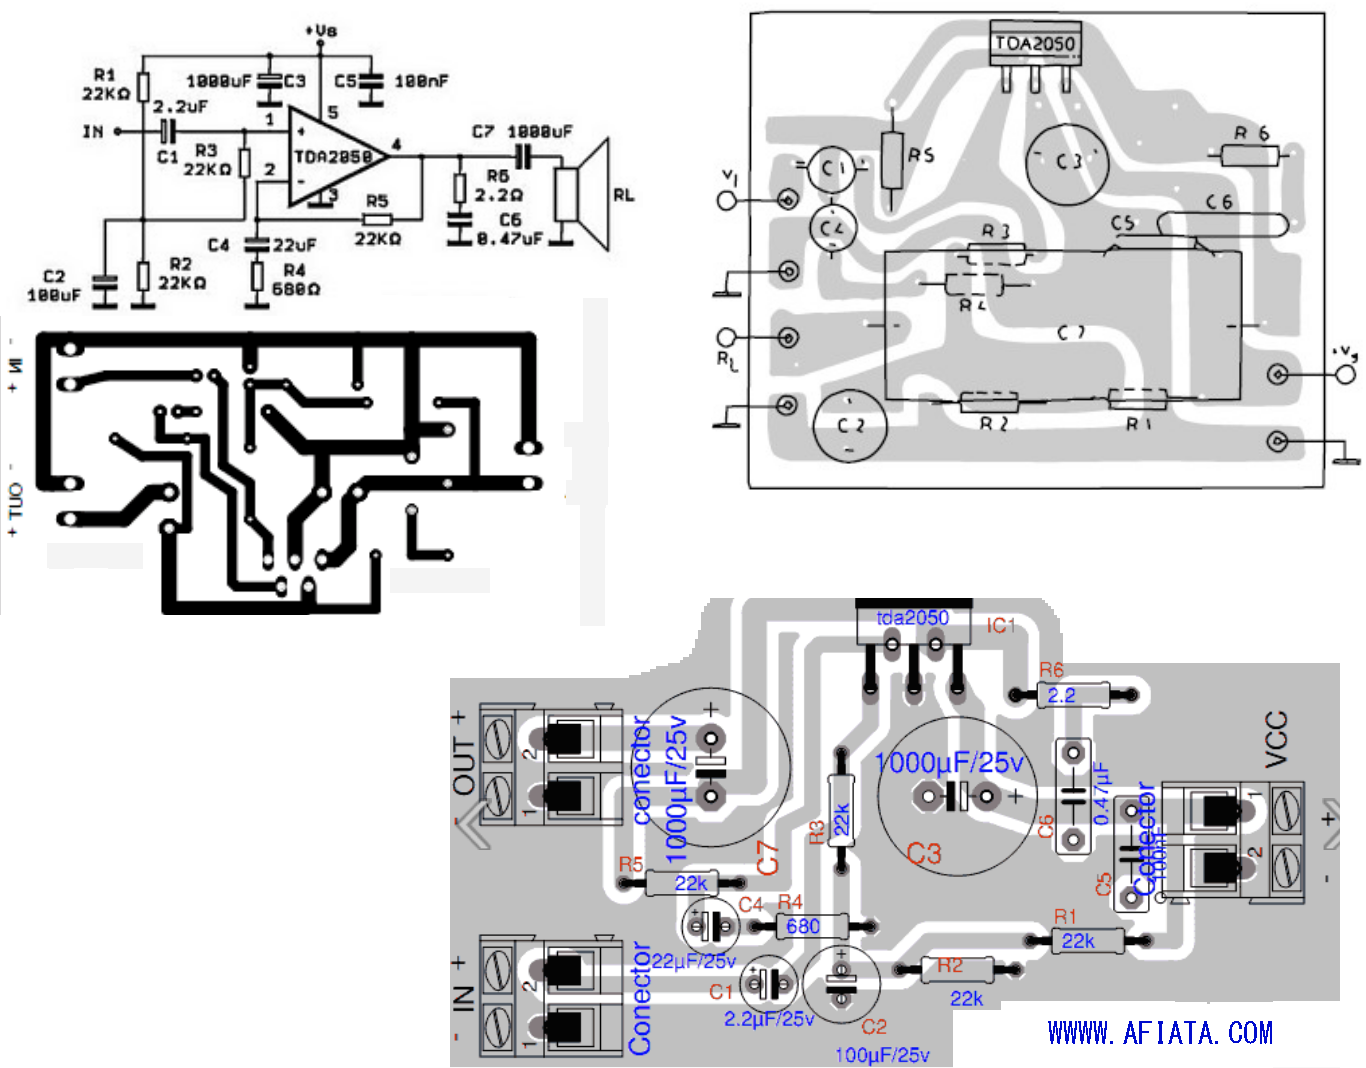 Tda2050 Layout And Circuit